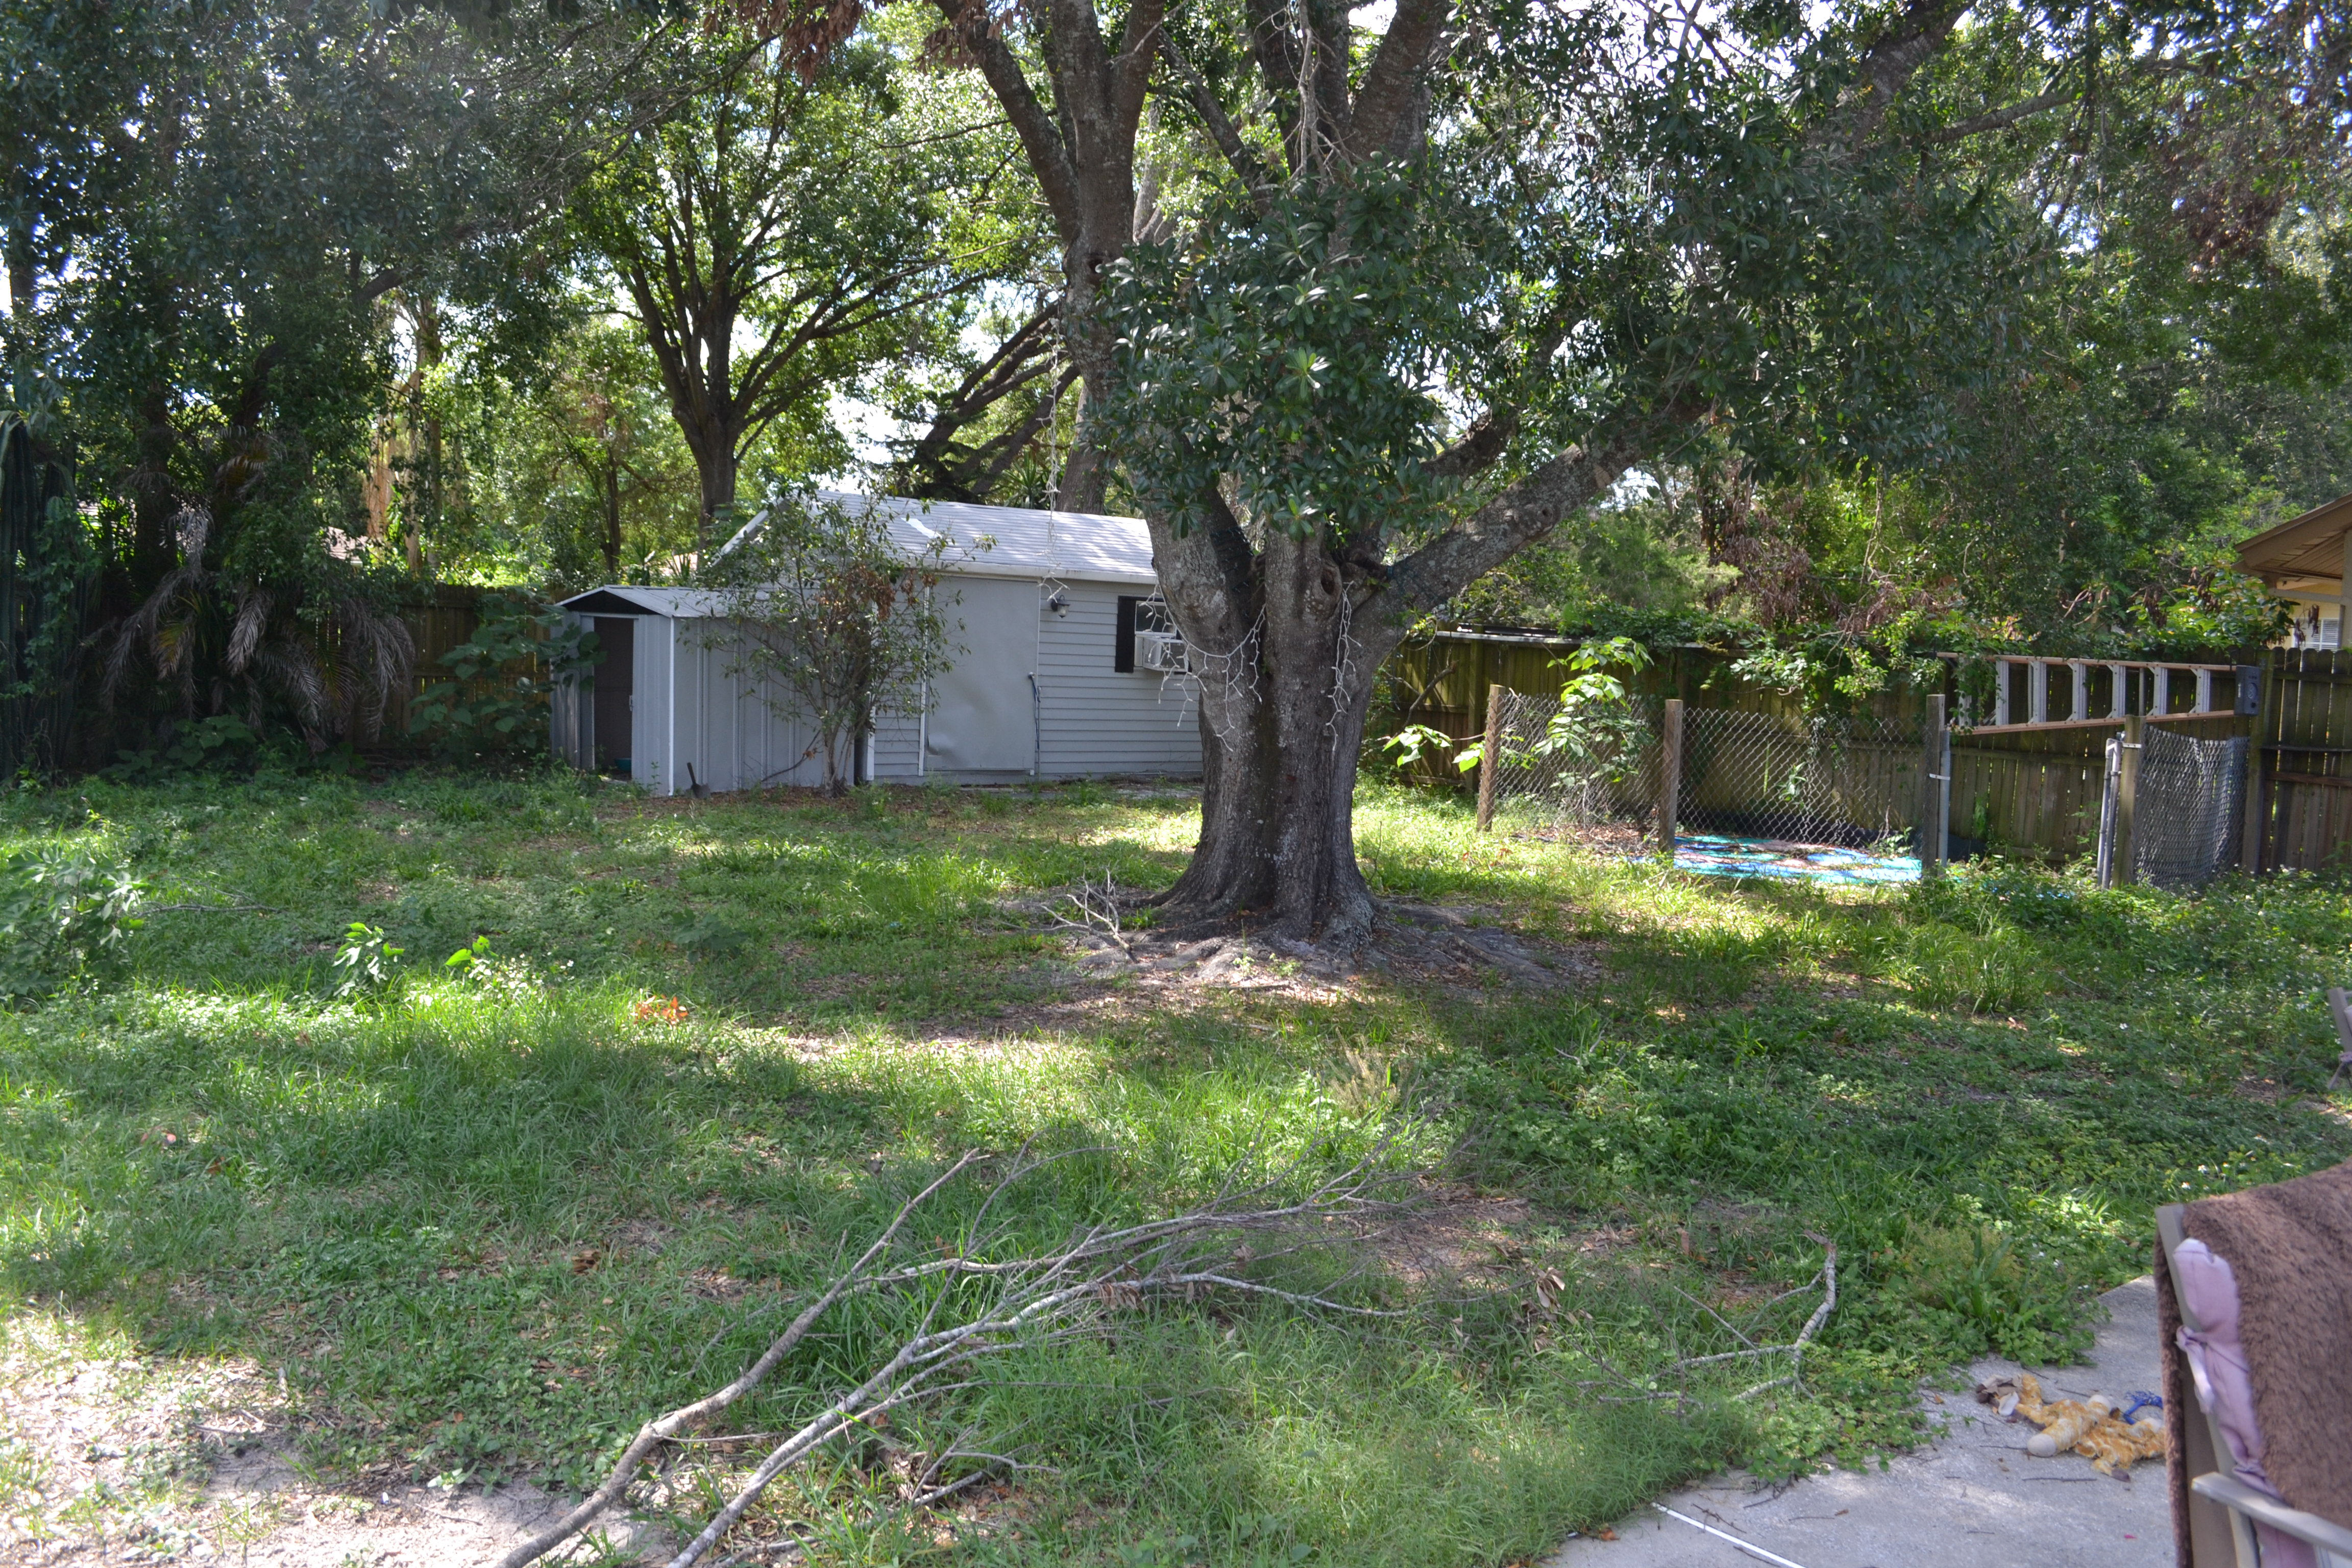 Photo of 4910 Seminole Ave, Winter Park, FL, 32792